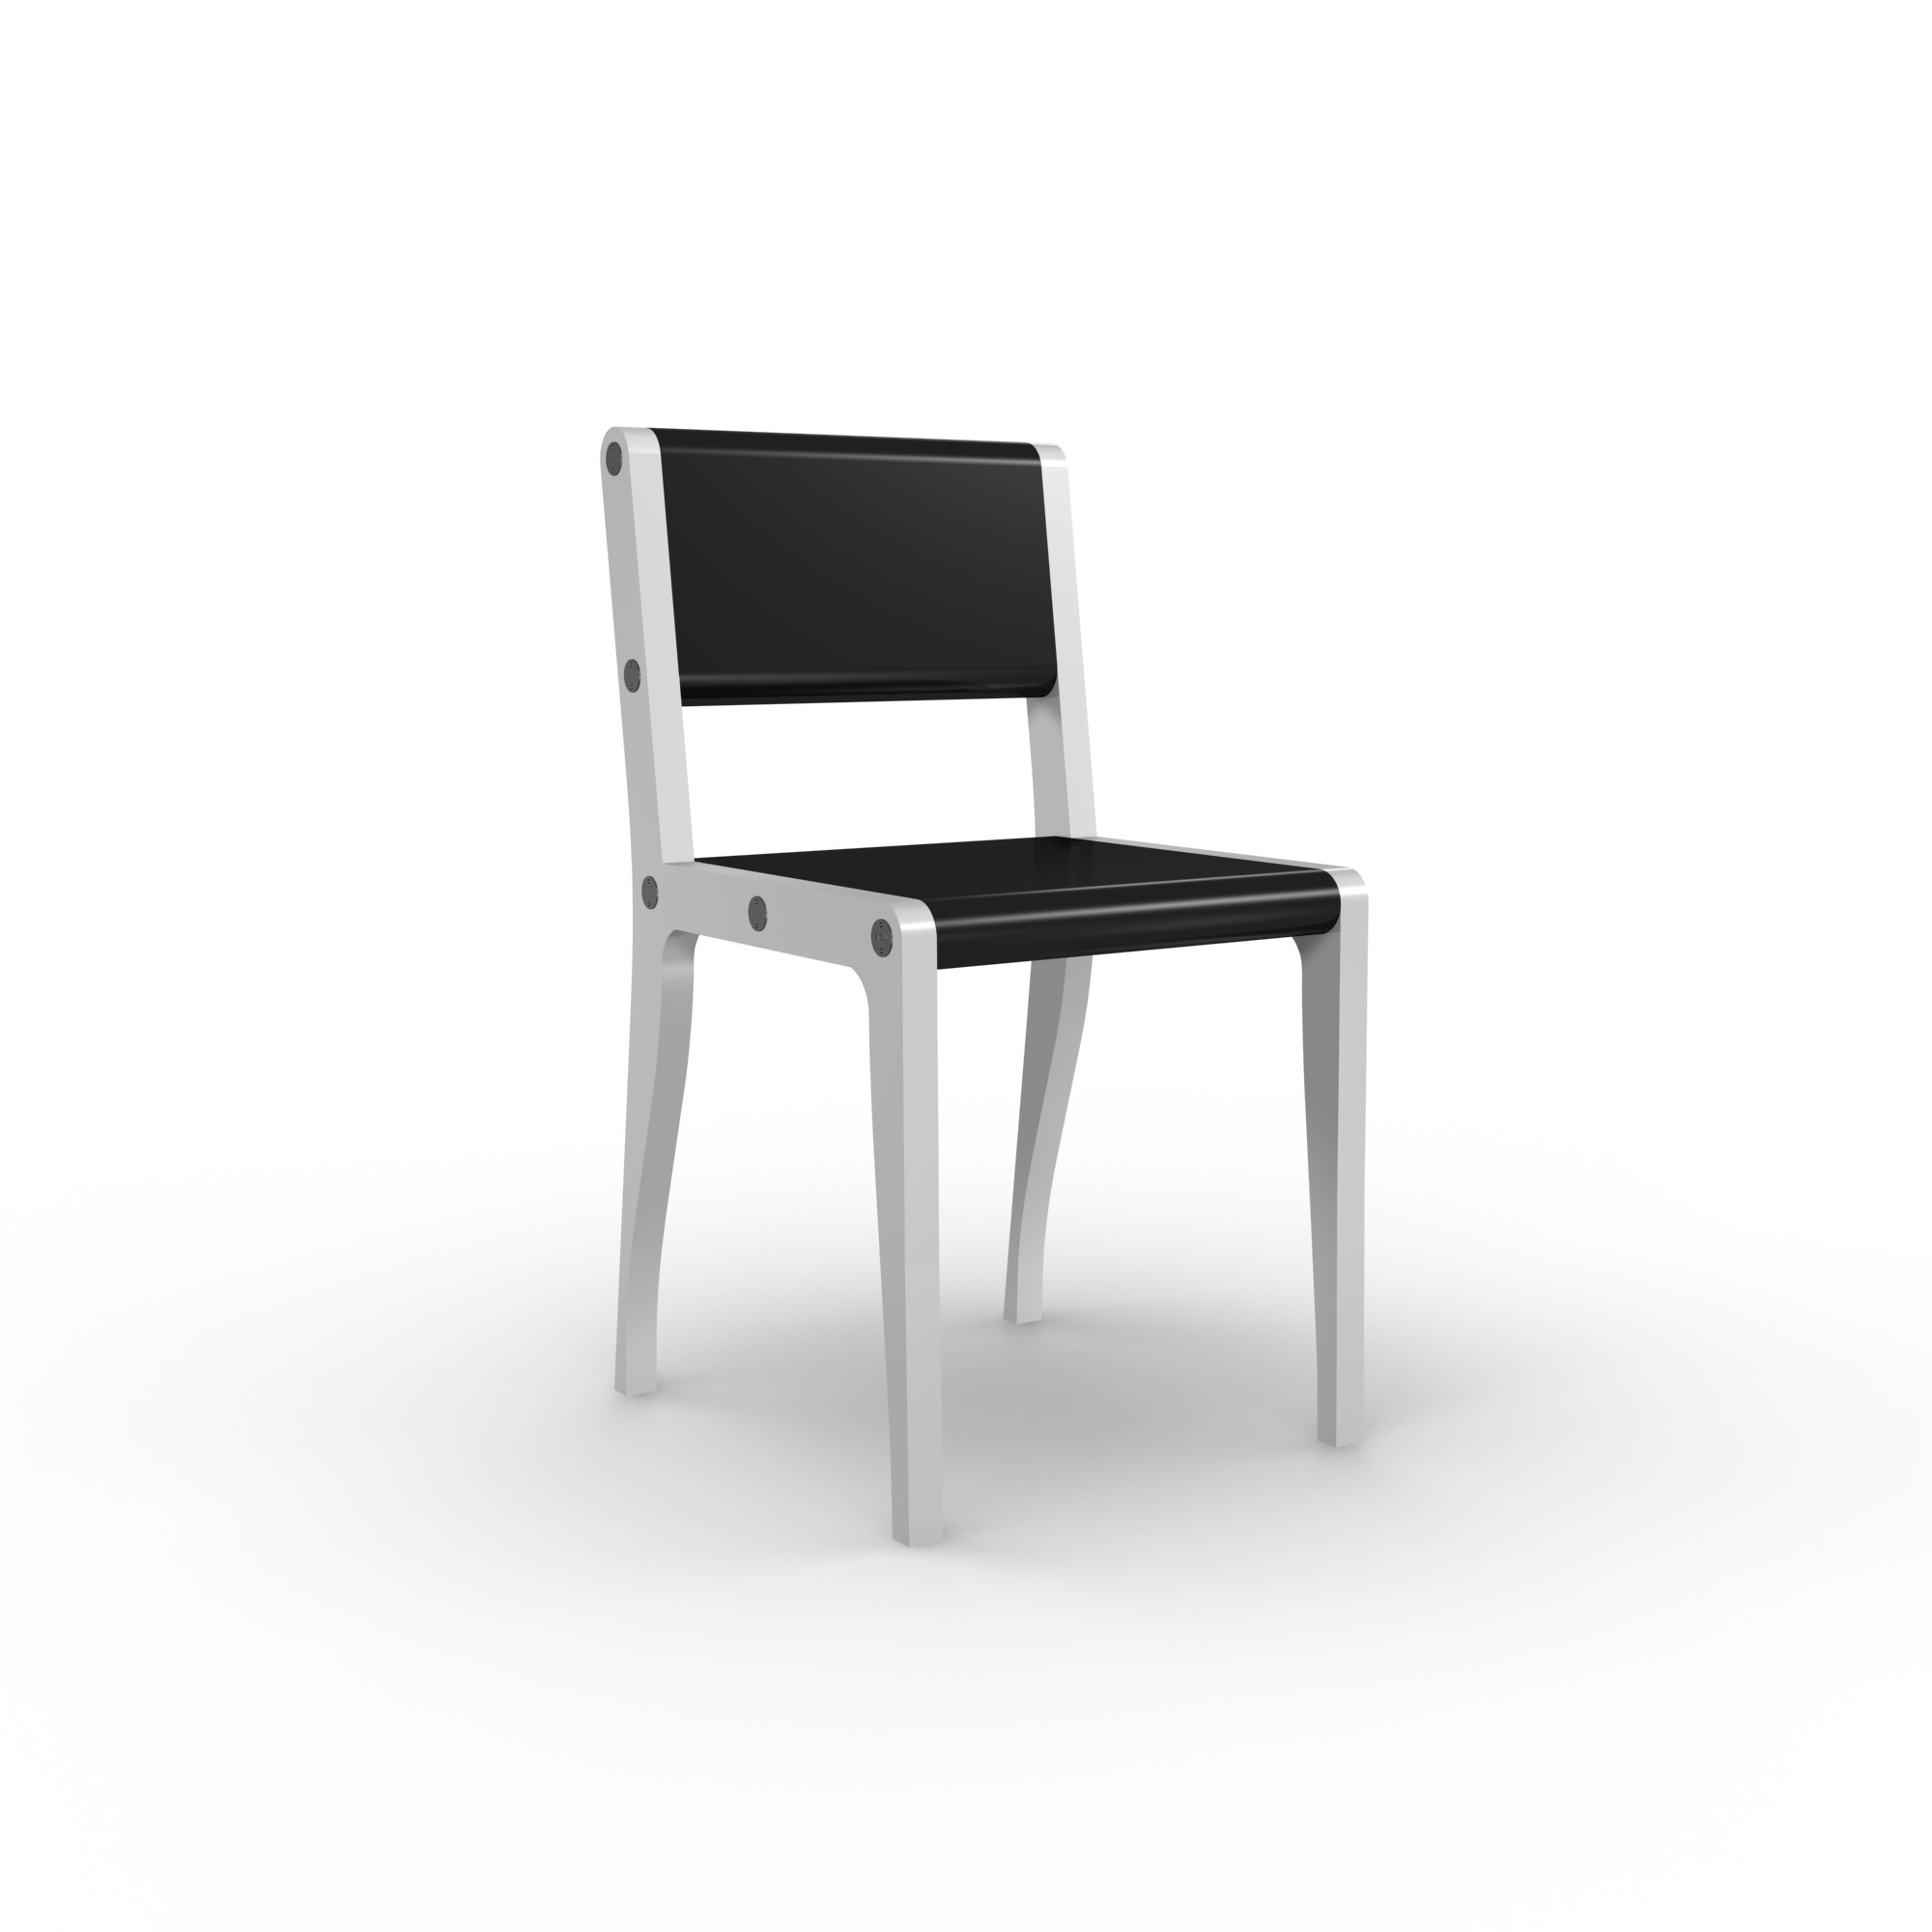 diseño industrial santander - Beusual - Sirak - silla black and white